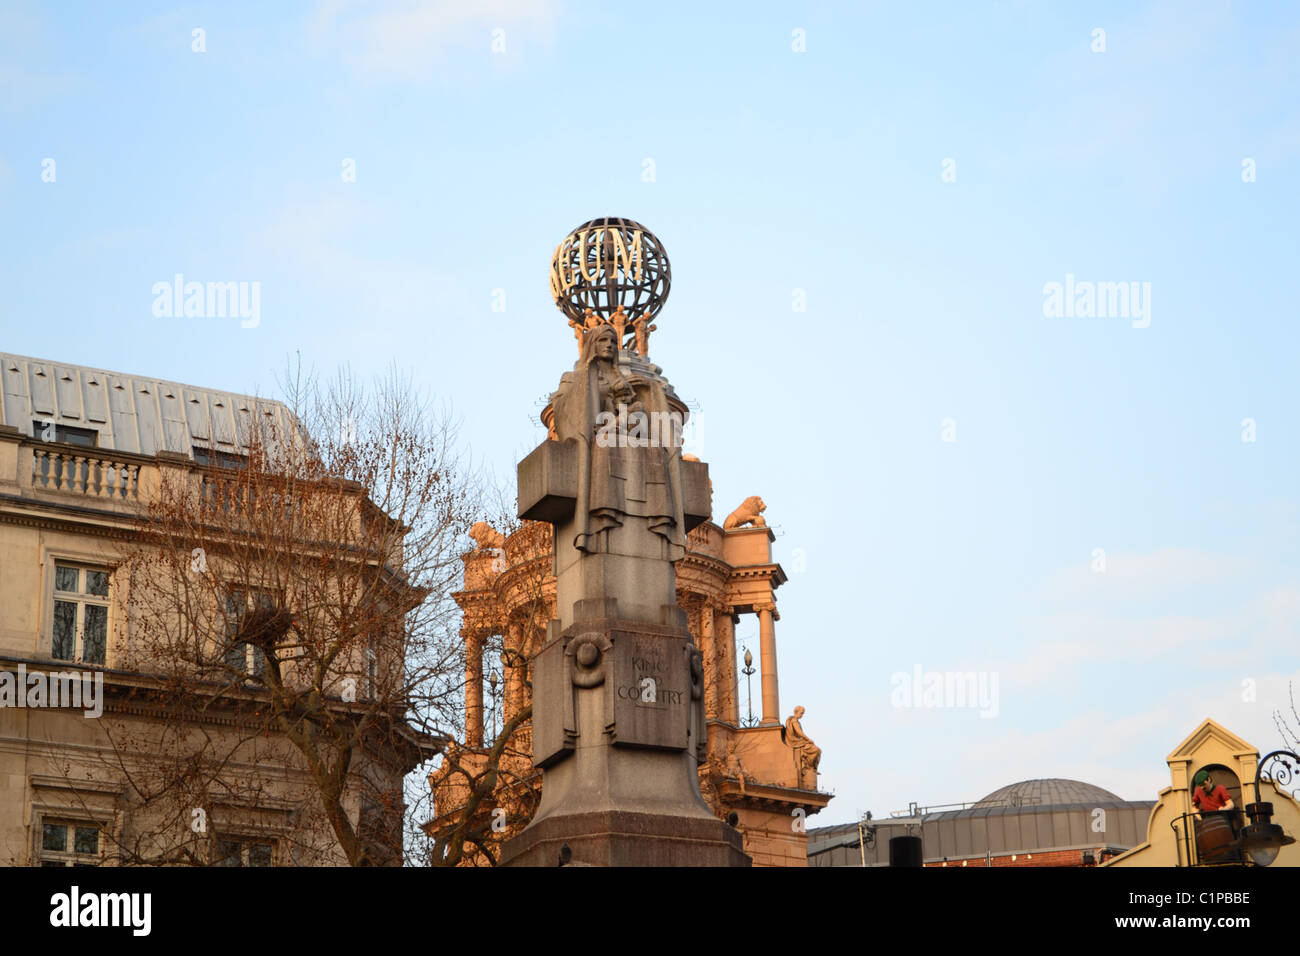 Coliseum Theatre, Theatreland, London, UK - Stock Image